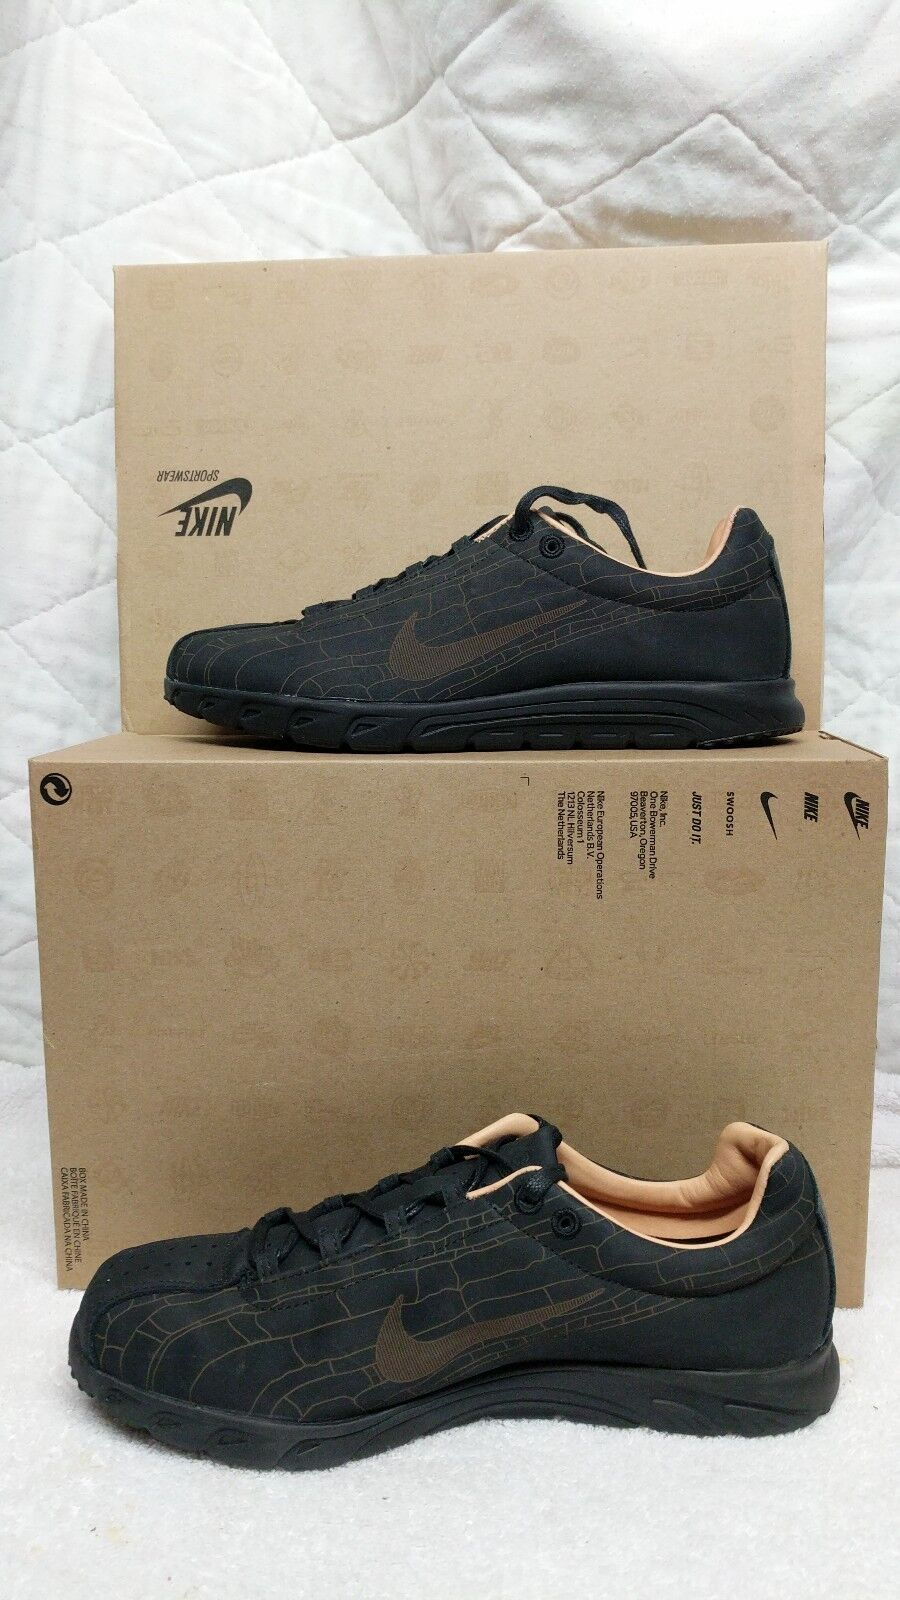 NIKE Mayfly Premium PRM NSW Price reduction The latest discount shoes for men and women